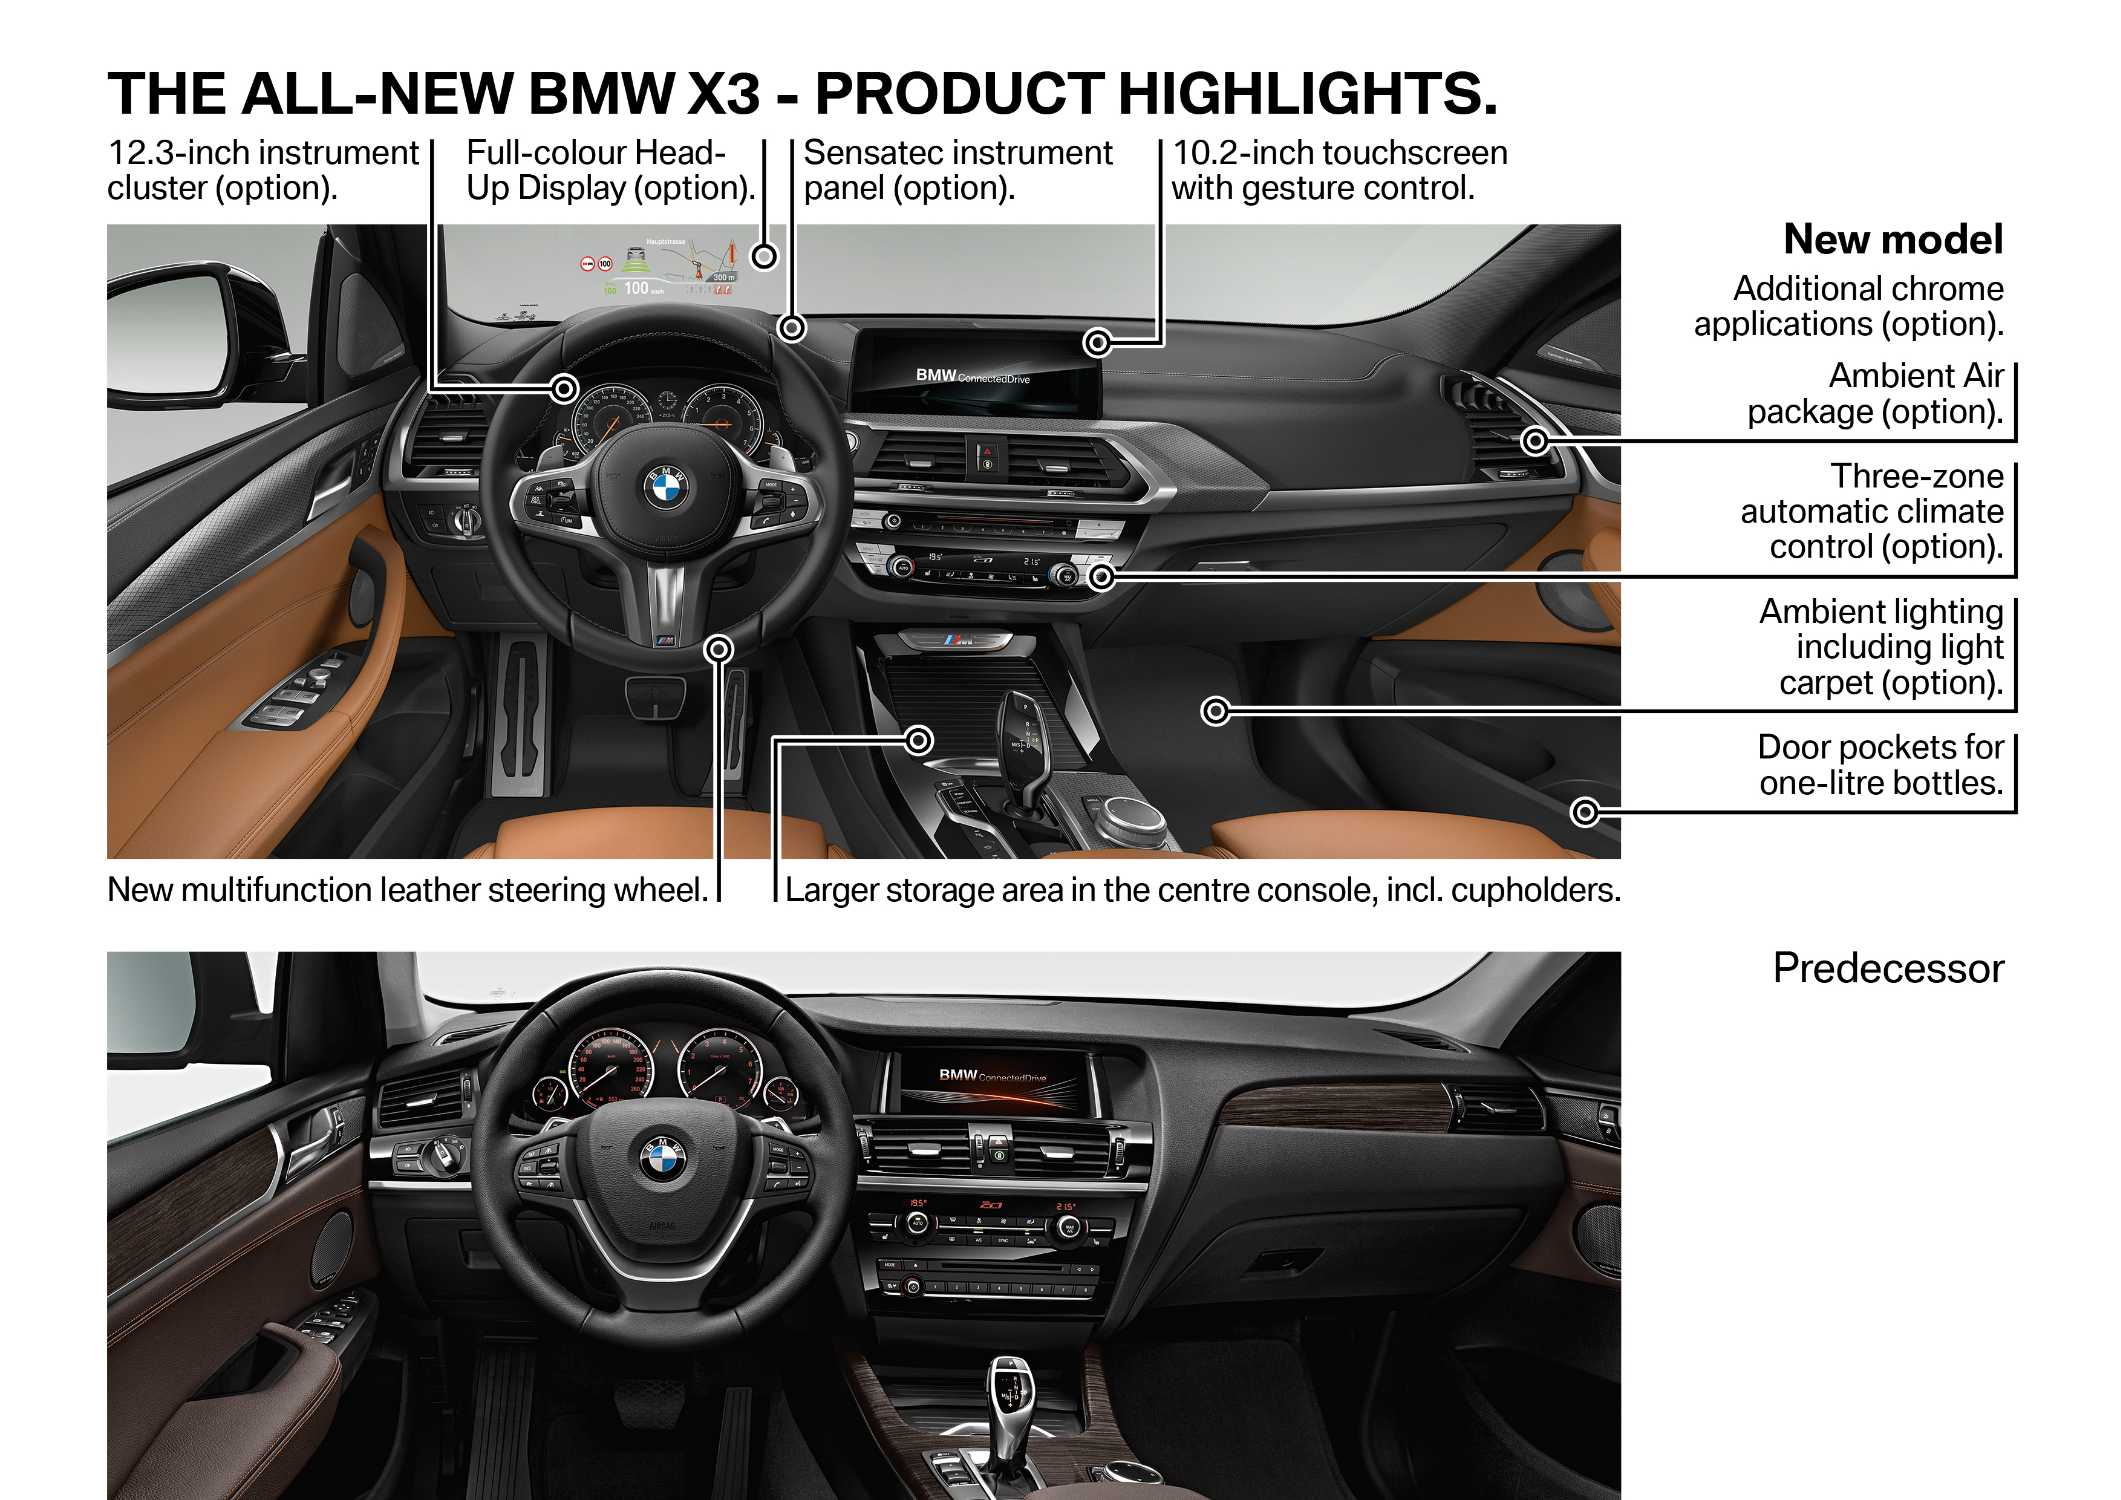 The new BMW X3 - Technical Highlights (06/2017).